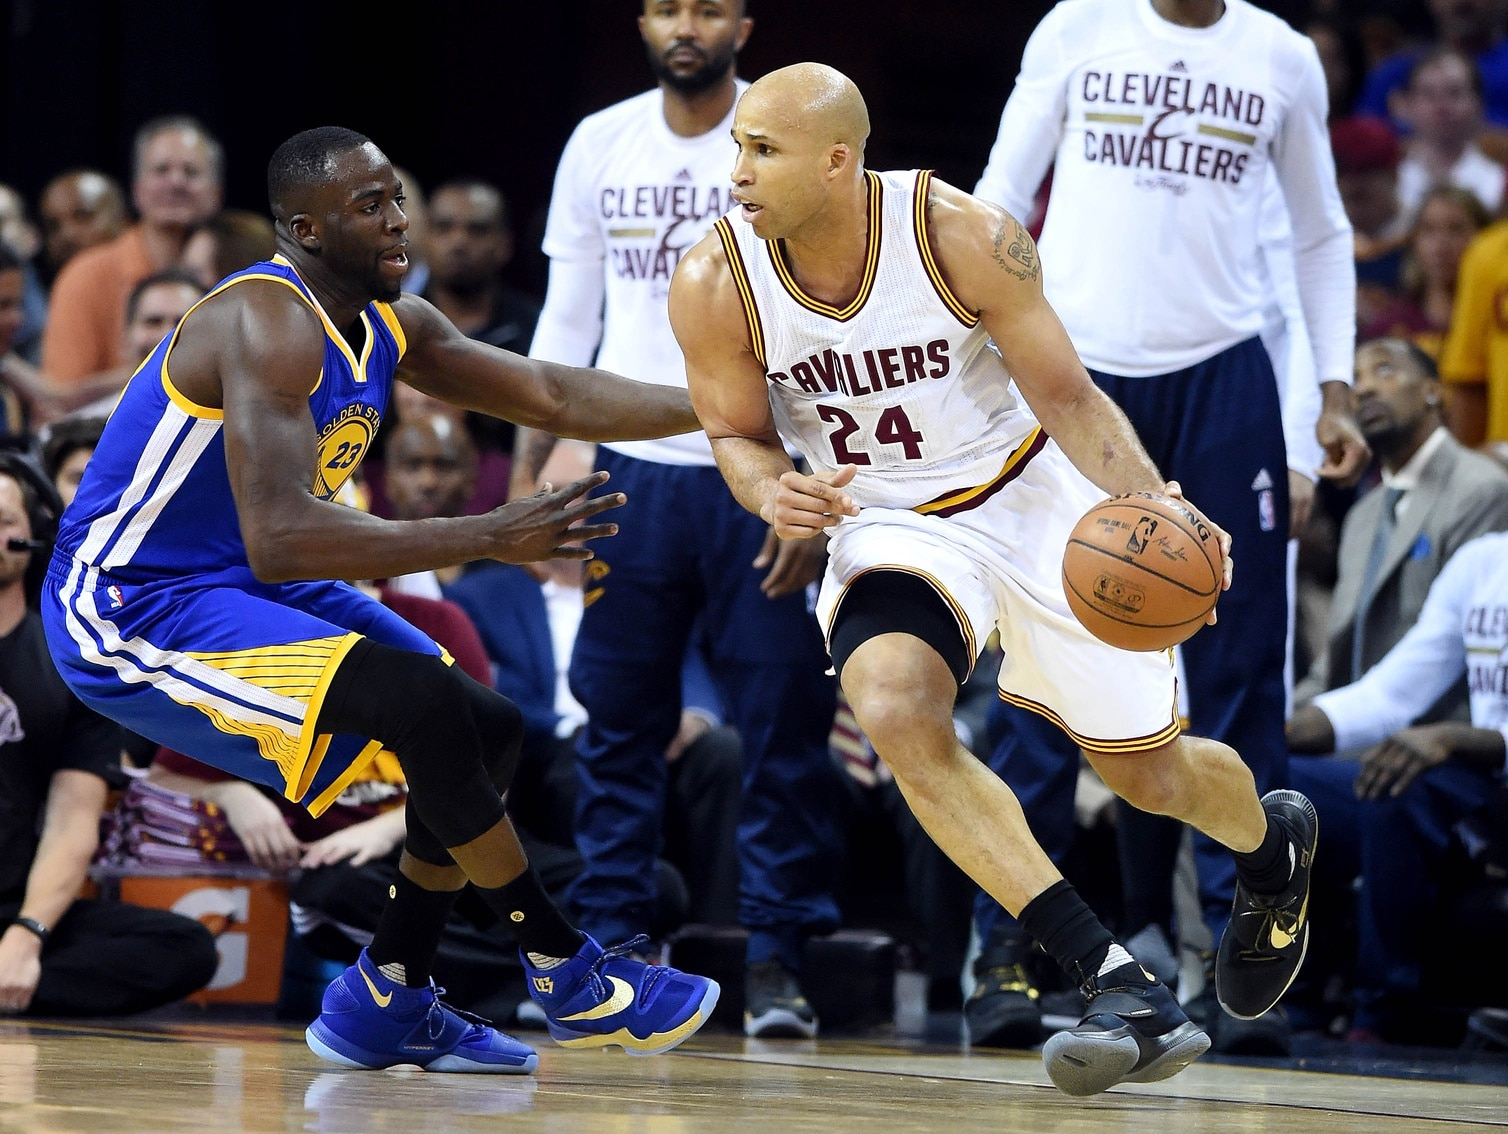 Jun 10, 2016; Cleveland, OH, USA; Cleveland Cavaliers forward Richard Jefferson (24) drives to the basket against Golden State Warriors forward Draymond Green (23) during the first quarter in game four of the NBA Finals at Quicken Loans Arena. Mandatory Credit: Ken Blaze-USA TODAY Sports